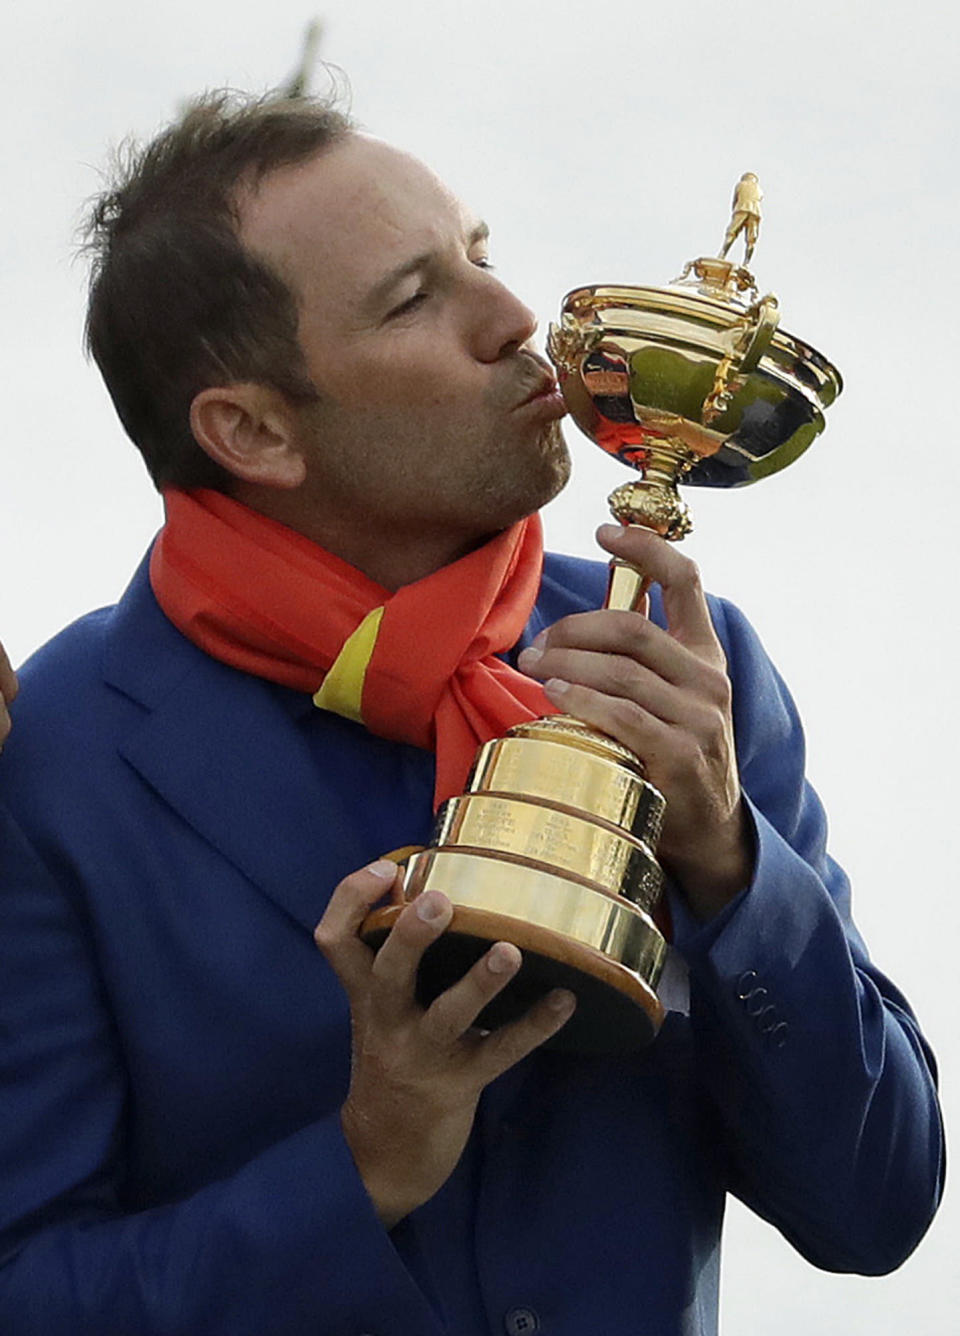 FILE - In this Sept. 30, 2018, file photo, Europe's Sergio Garcia kisses the trophy after Europe won the Ryder Cup on the final day of the 42nd Ryder Cup at Le Golf National in Saint-Quentin-en-Yvelines, outside Paris, France. Garcia has the highest points total in Ryder Cup history with 25 1/2 points. The pandemic-delayed 2020 Ryder Cup returns the United States next week at Whistling Straits along the Wisconsin shores of Lake Michigan. (AP Photo/Matt Dunham, File)